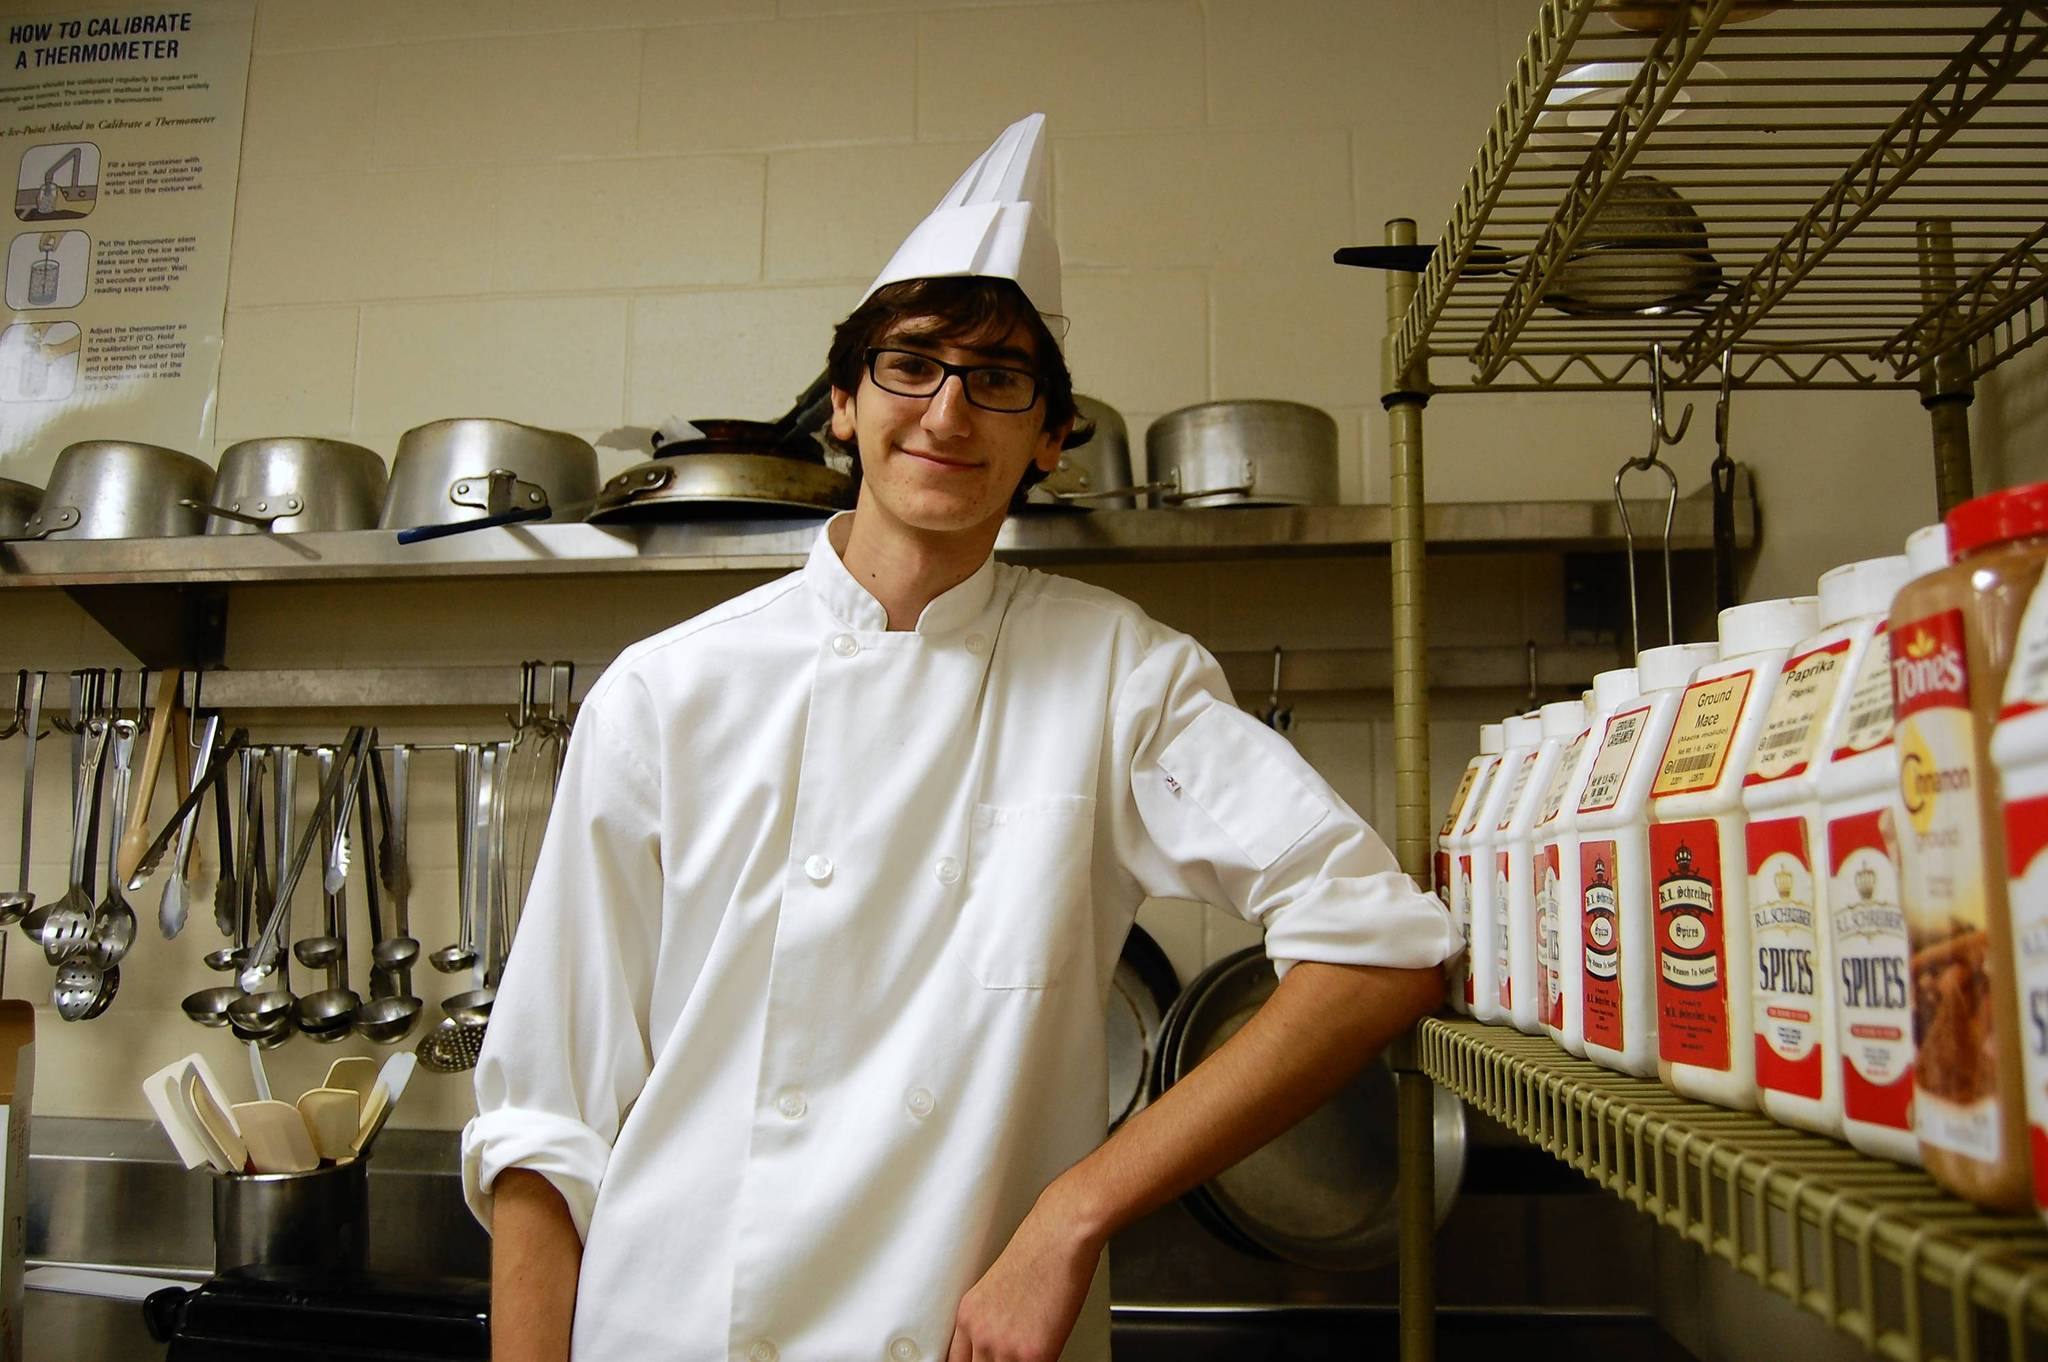 Tim Norton, 18, will graduate from Tavares High School this weekend and plans to study culinary arts in the fall.